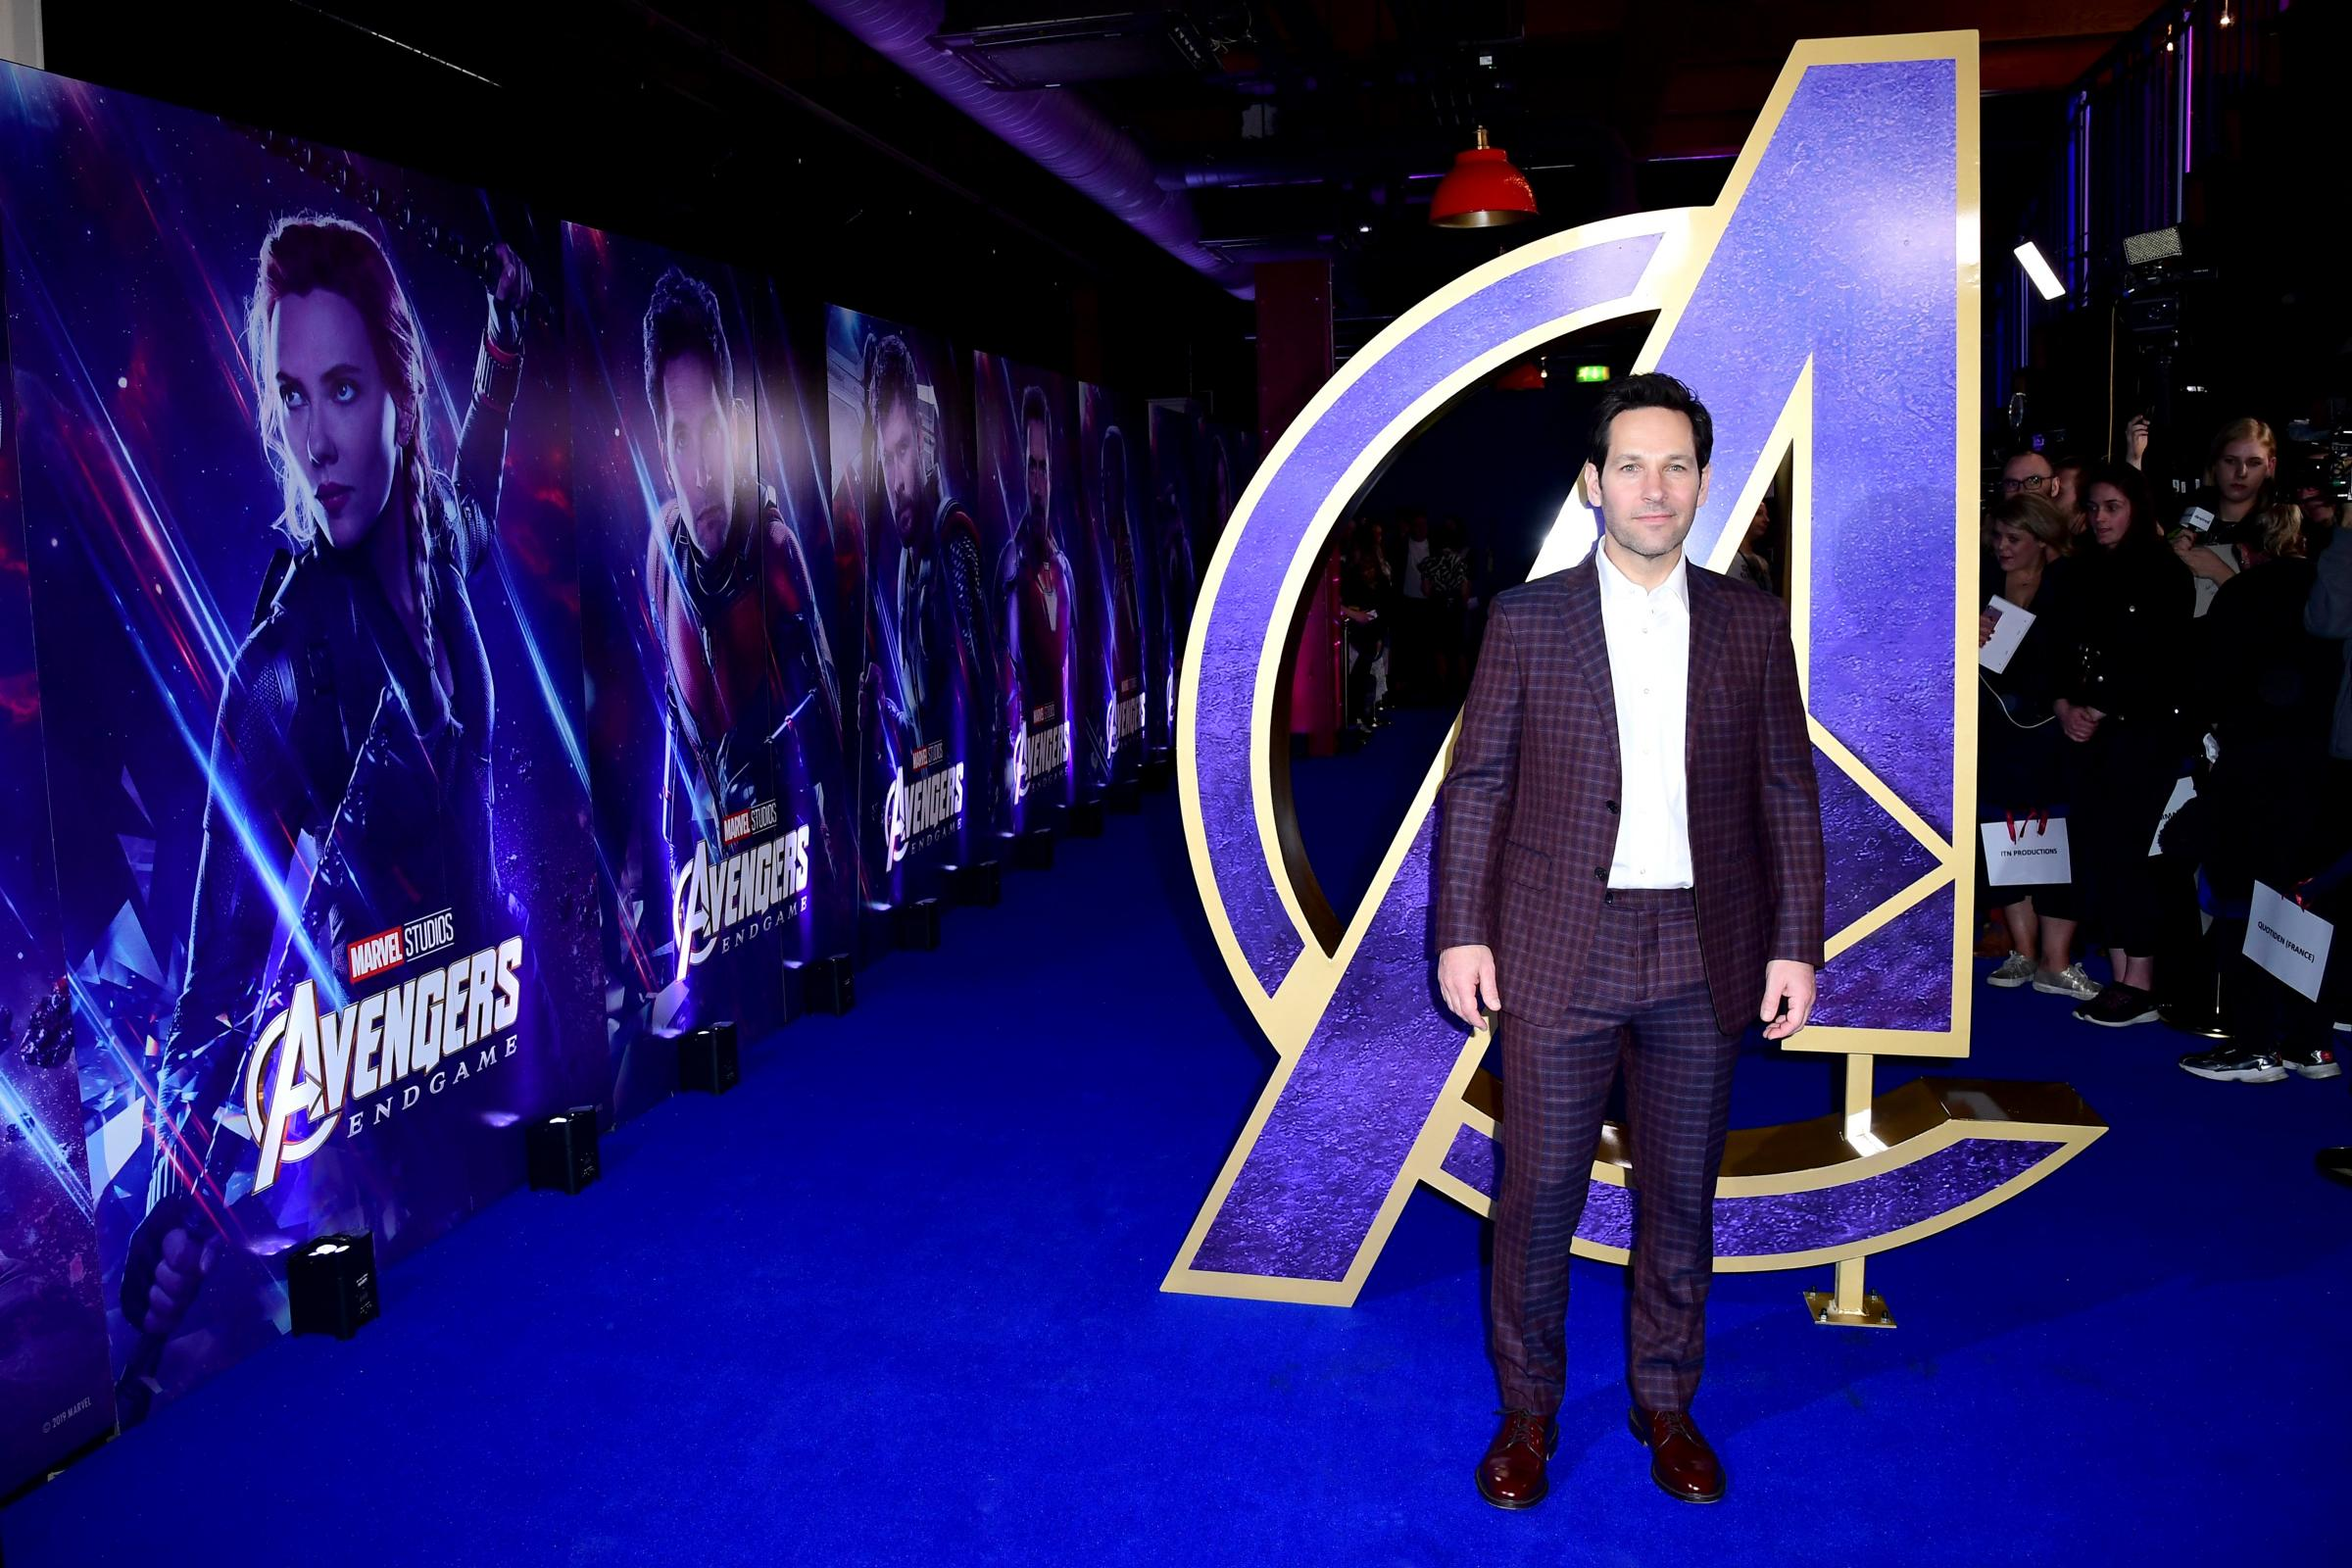 Paul Rudd at an Avengers: Endgame fan event at Picturehouse Central in London